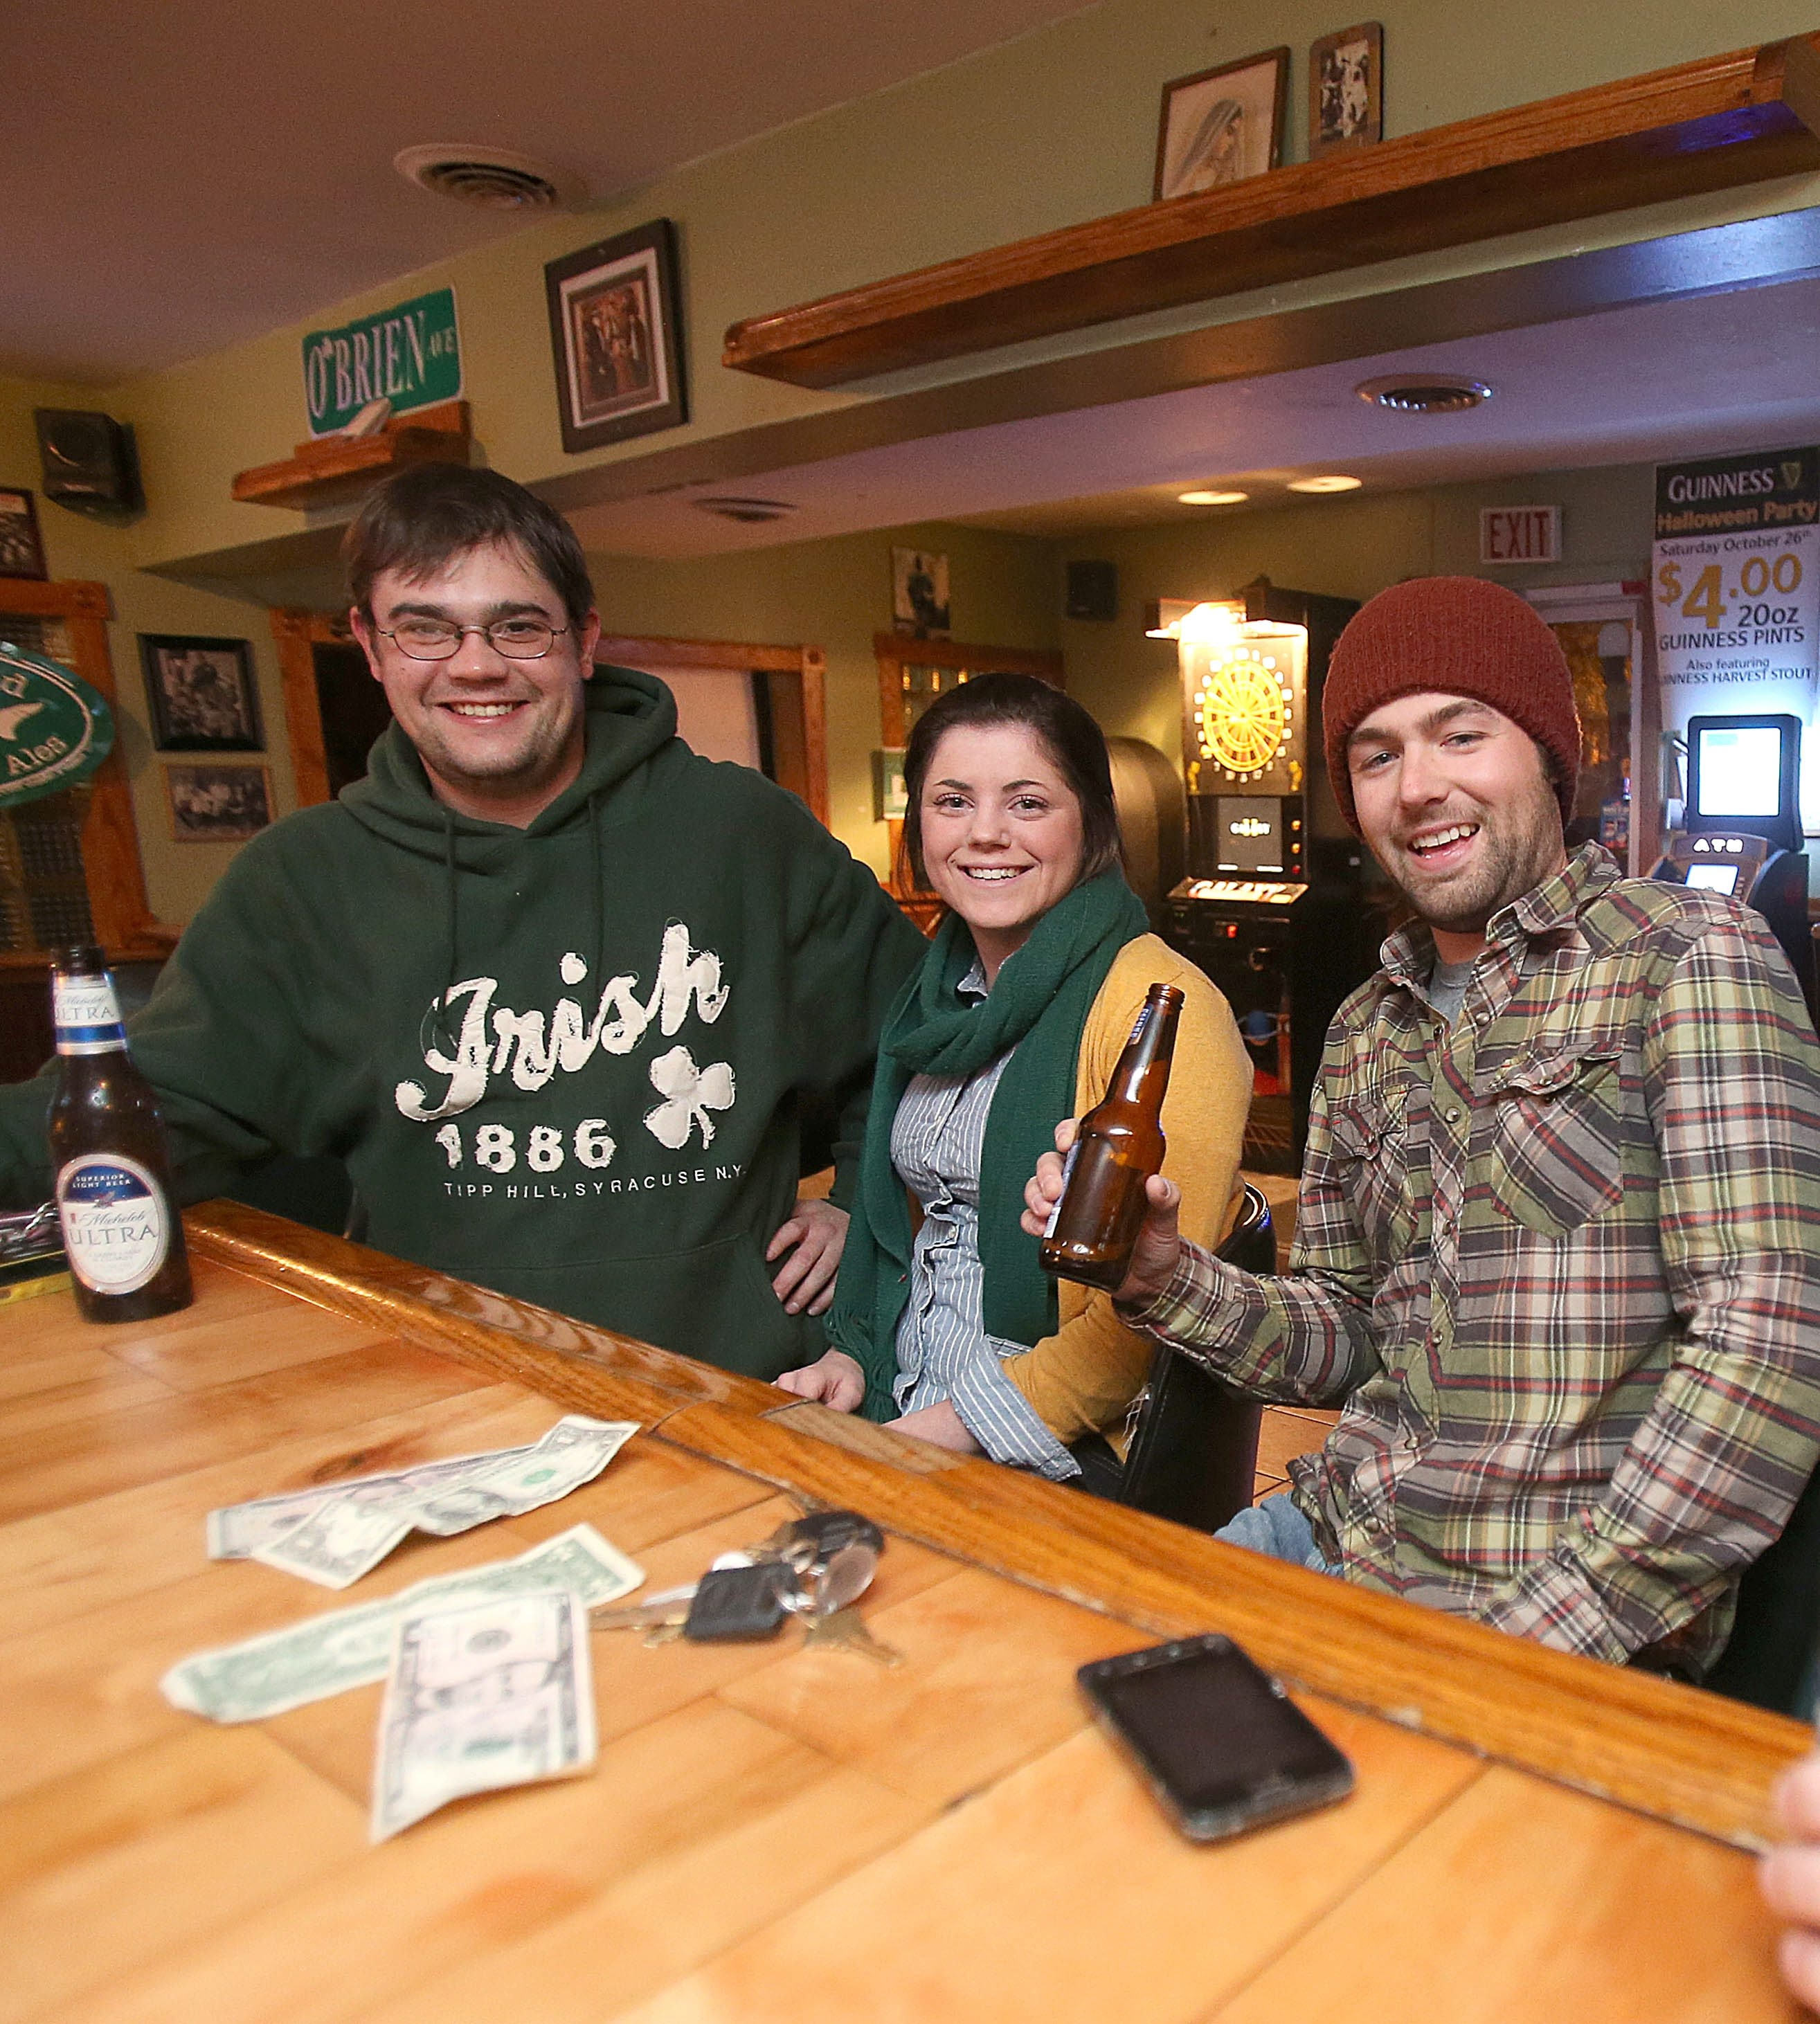 Jim Creahan, left, Mavourneen Kuebler and David Kraft enjoy good times and cool drinks at the Hop Inn in South Buffalo.